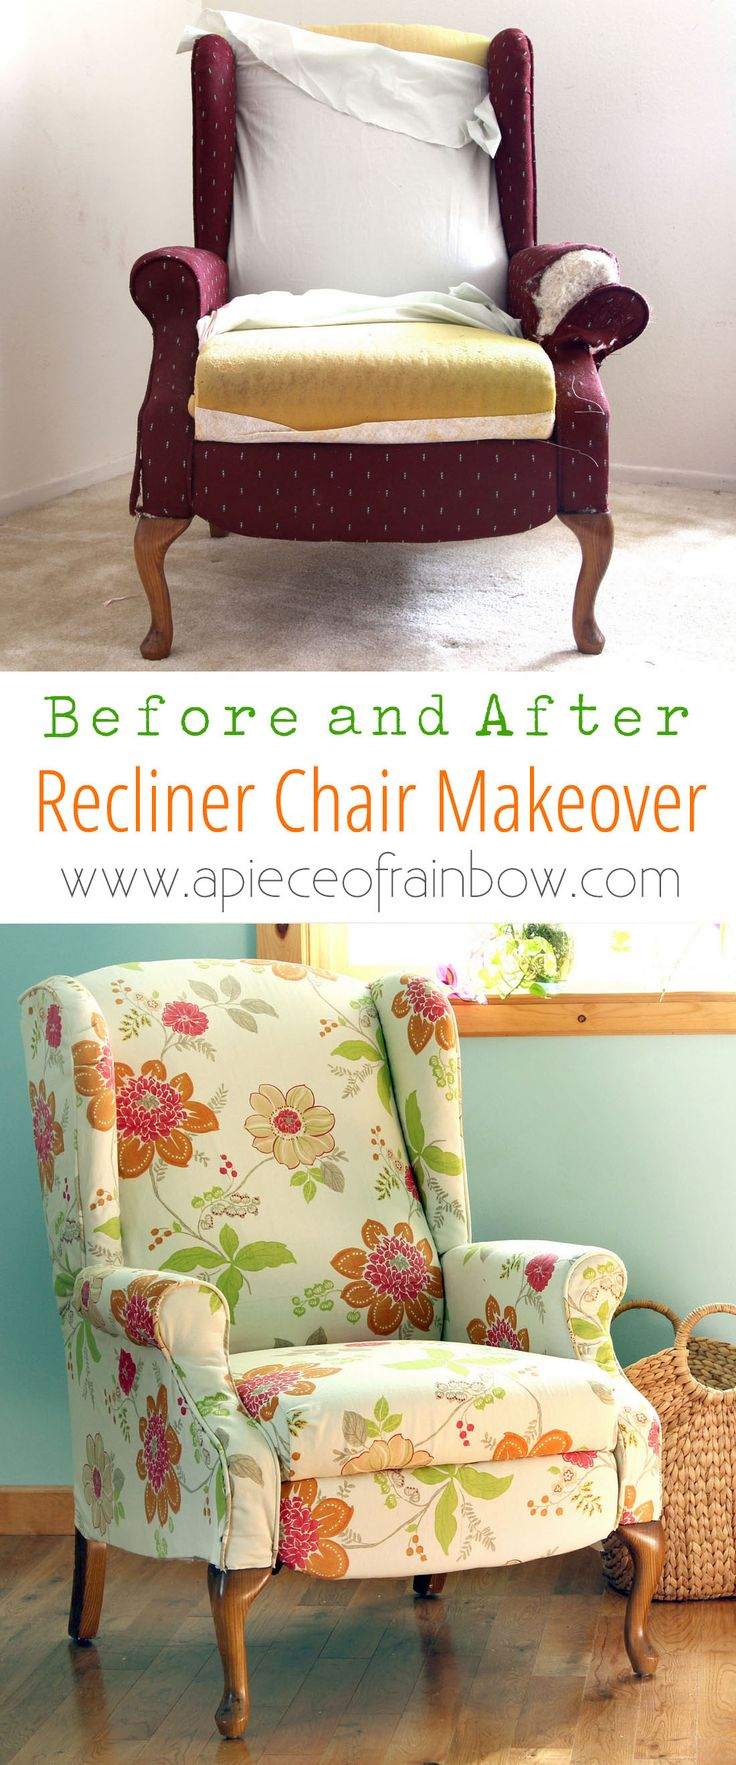 Fabric Chair Makeover Before After - A Piece Of Rainbow